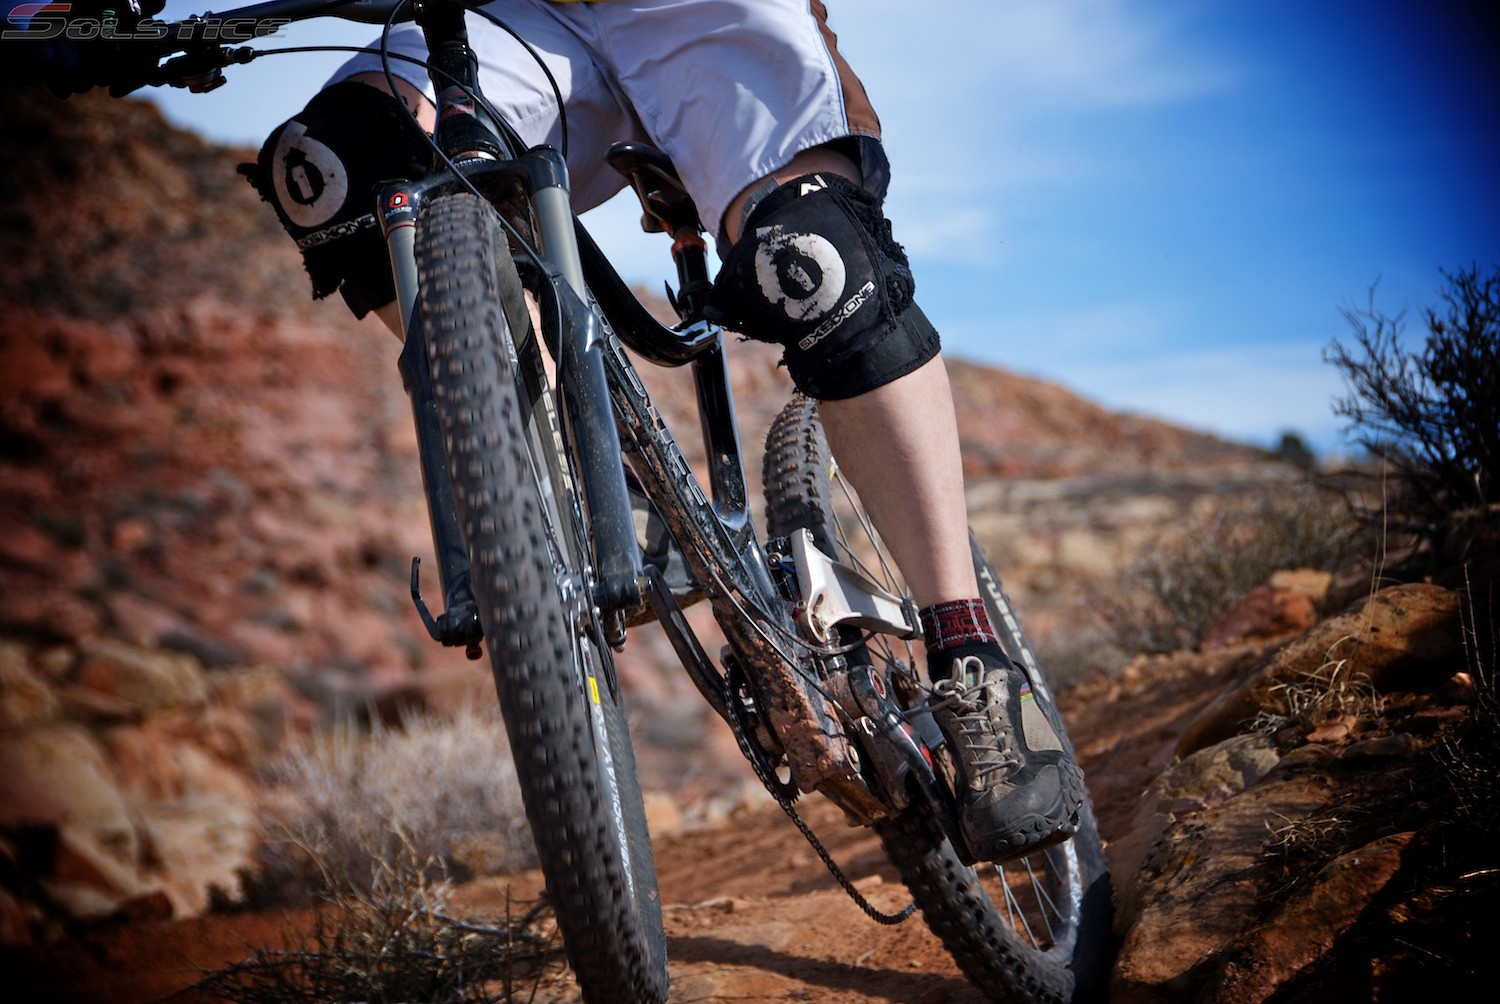 BTL 2280 - b-lec - Mountain Biking Pictures - Vital MTB